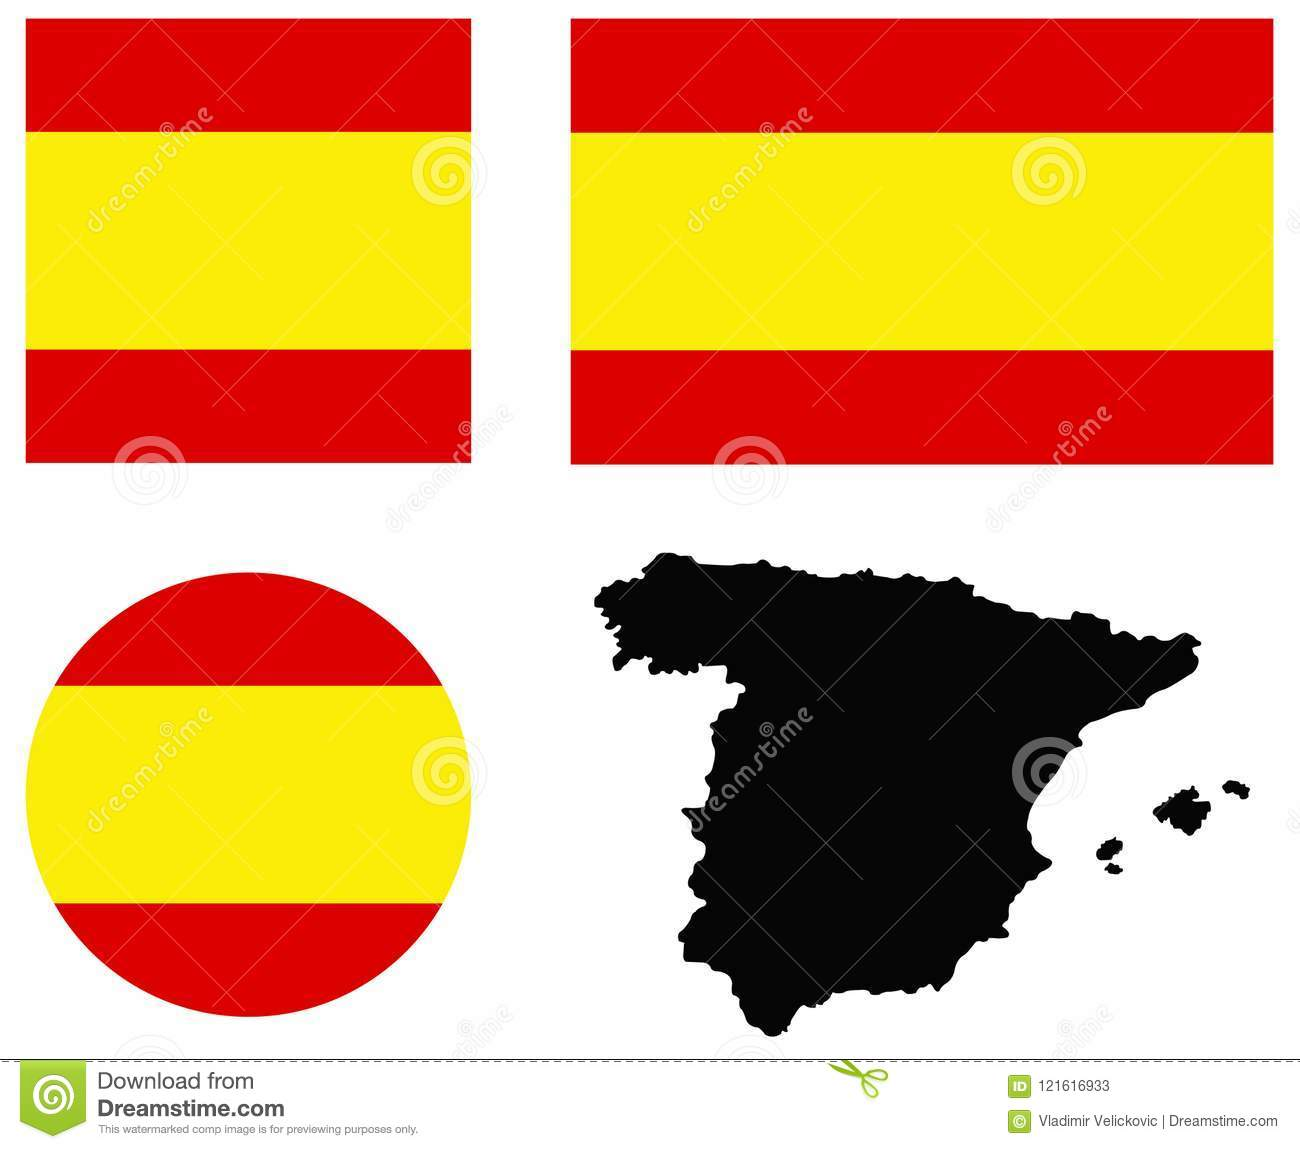 Spain Map And Flag - Sovereign State On The Iberian Peninsula In ...